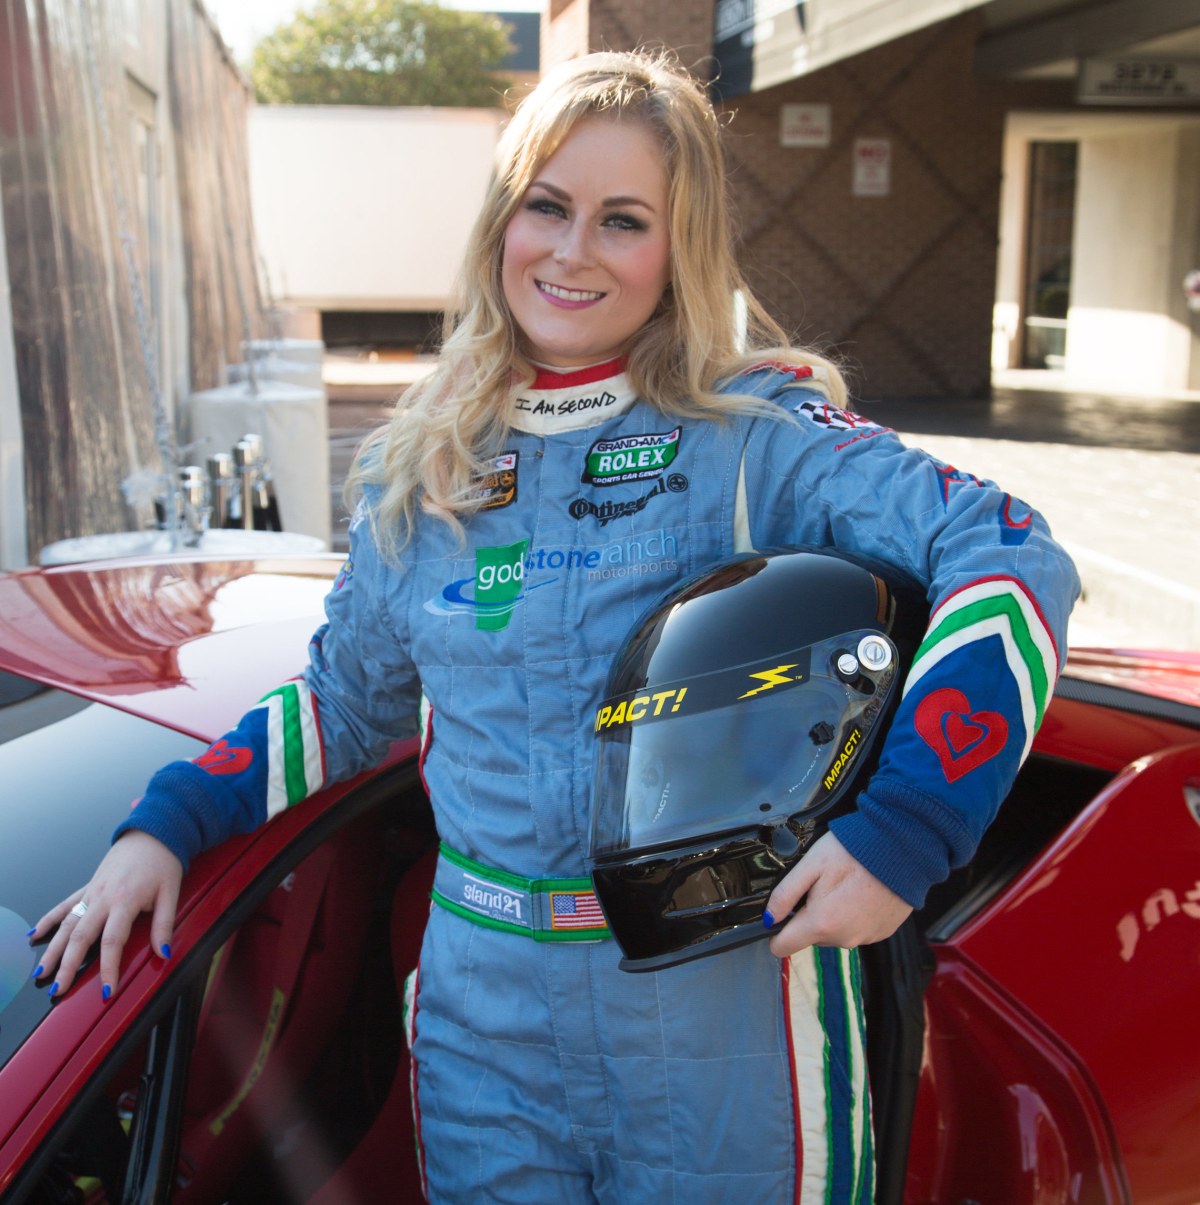 Houston, Mica Mosbacher Racing Forward event, October 2015, Ally Babineaux